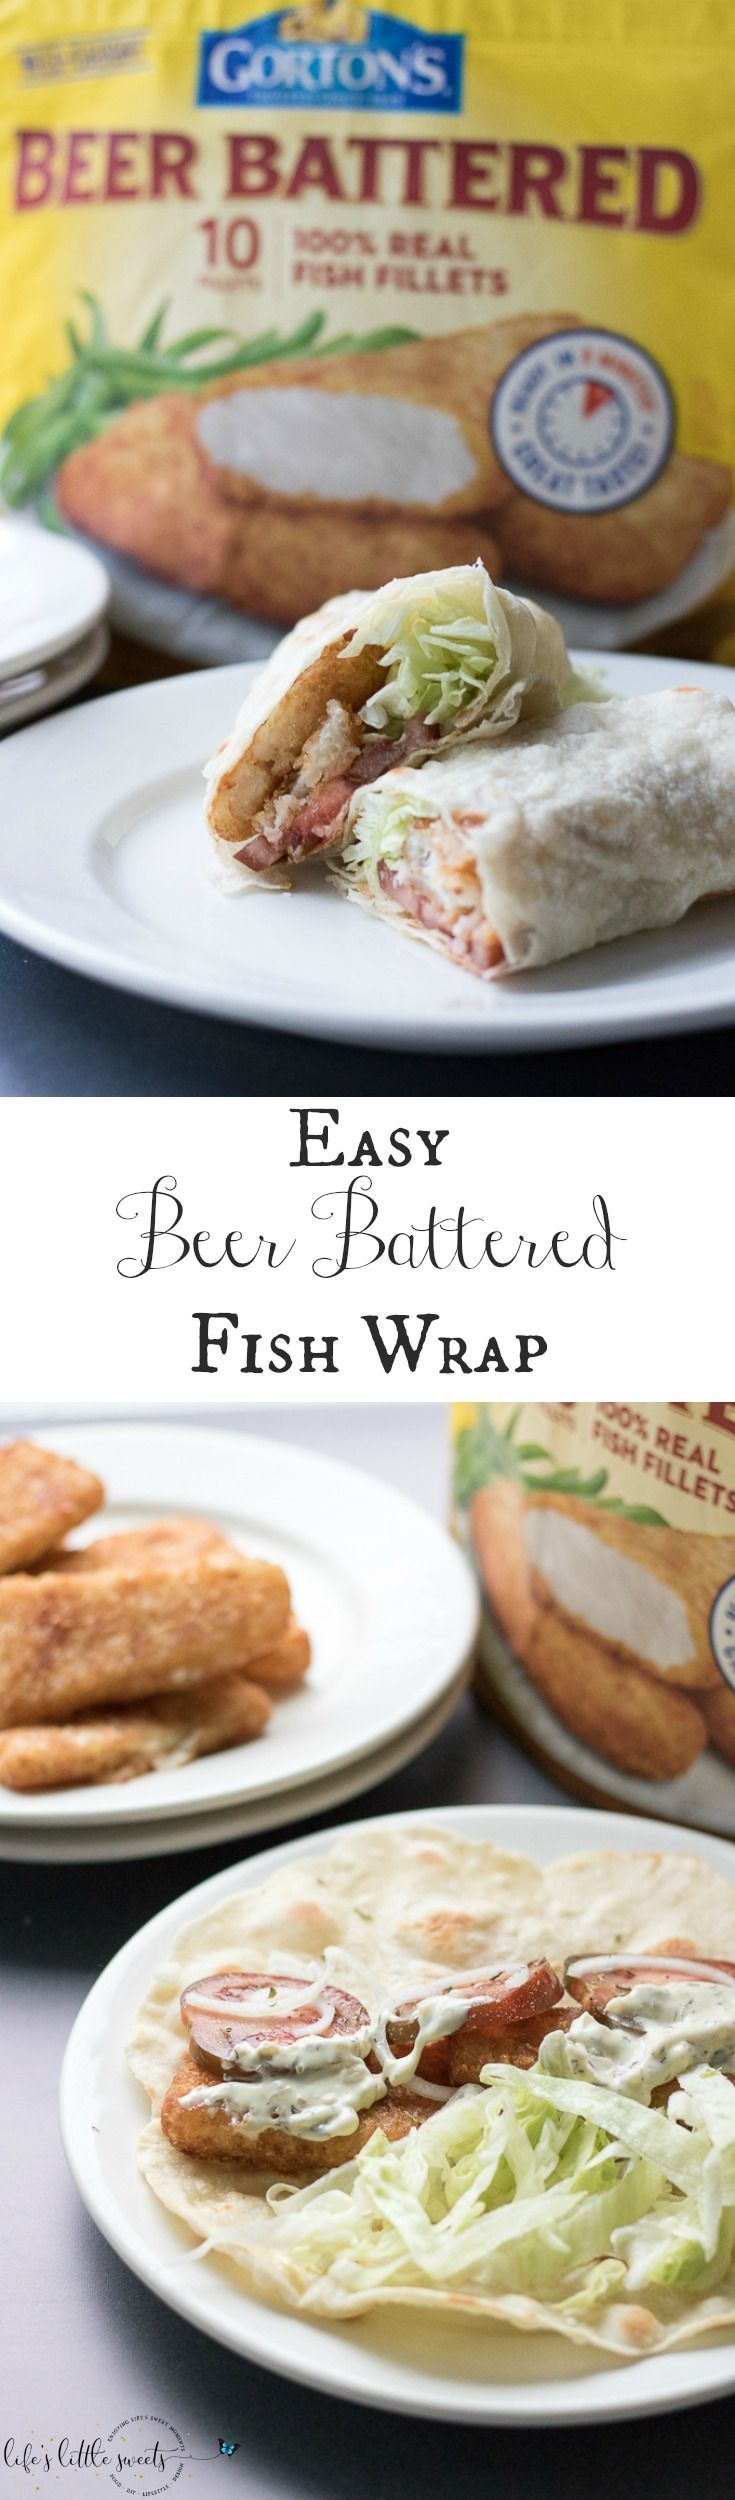 This Easy Beer Battered Fish Wrap has fresh ripe tomatoes, sliced onion, shaved Iceberg lettuce and Gorton's Beer Battered Fish Fillets - all wrapped up in a tortilla wrap. #GortonsMealTime#TrustGortons #CollectiveBias #ad @gortonsseafood